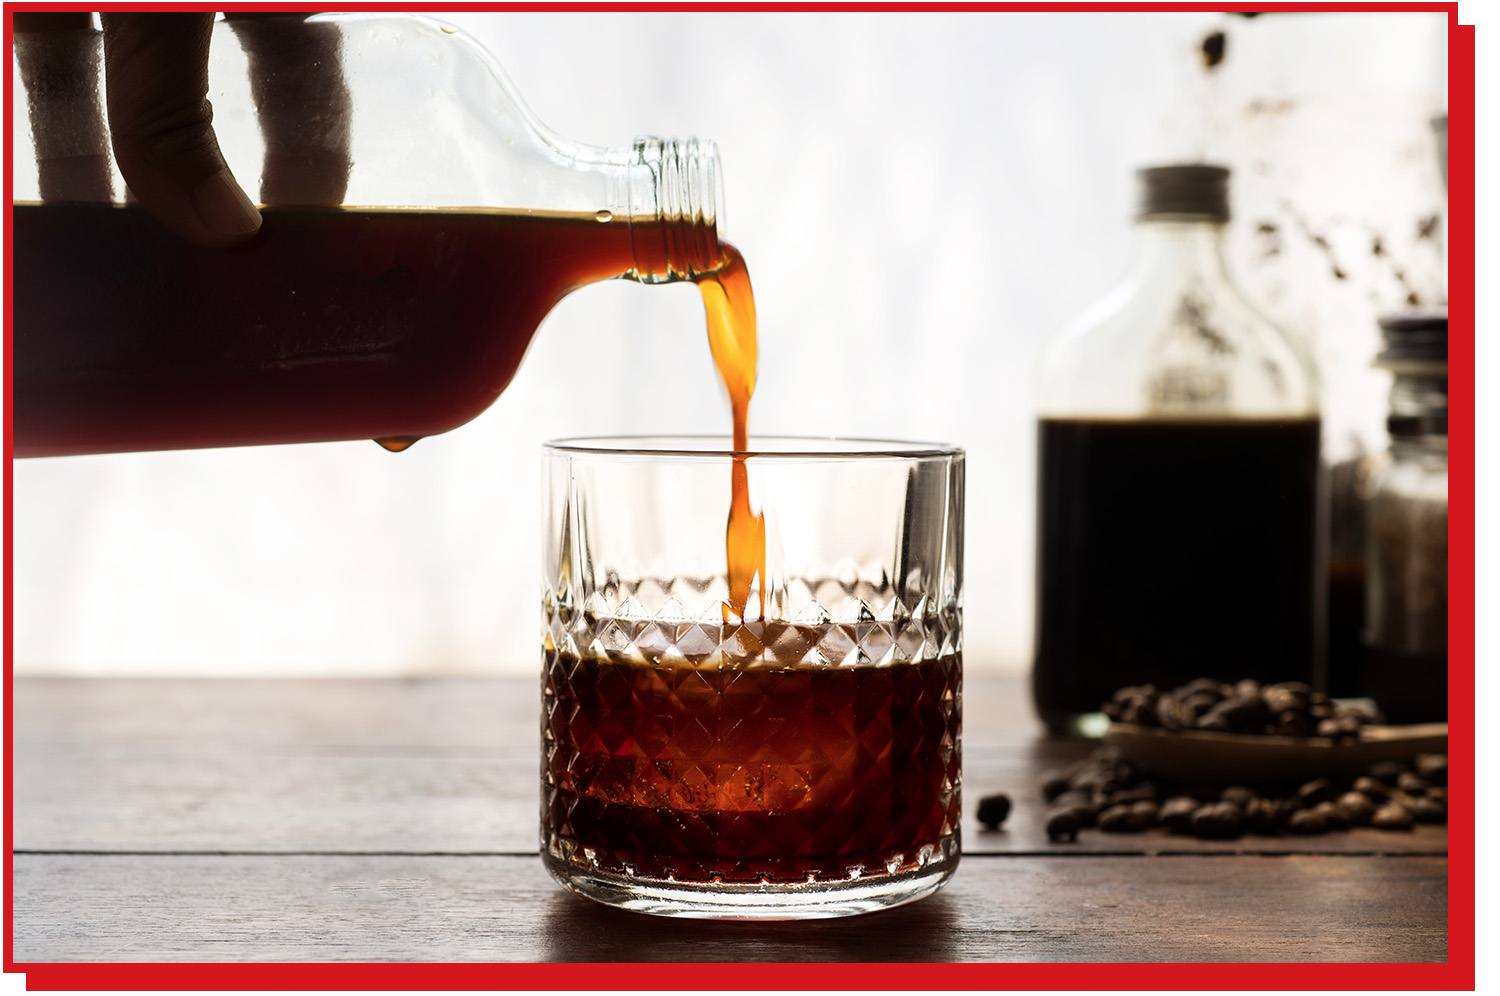 Coffee being poured from a clear glass bottle into a short glass.